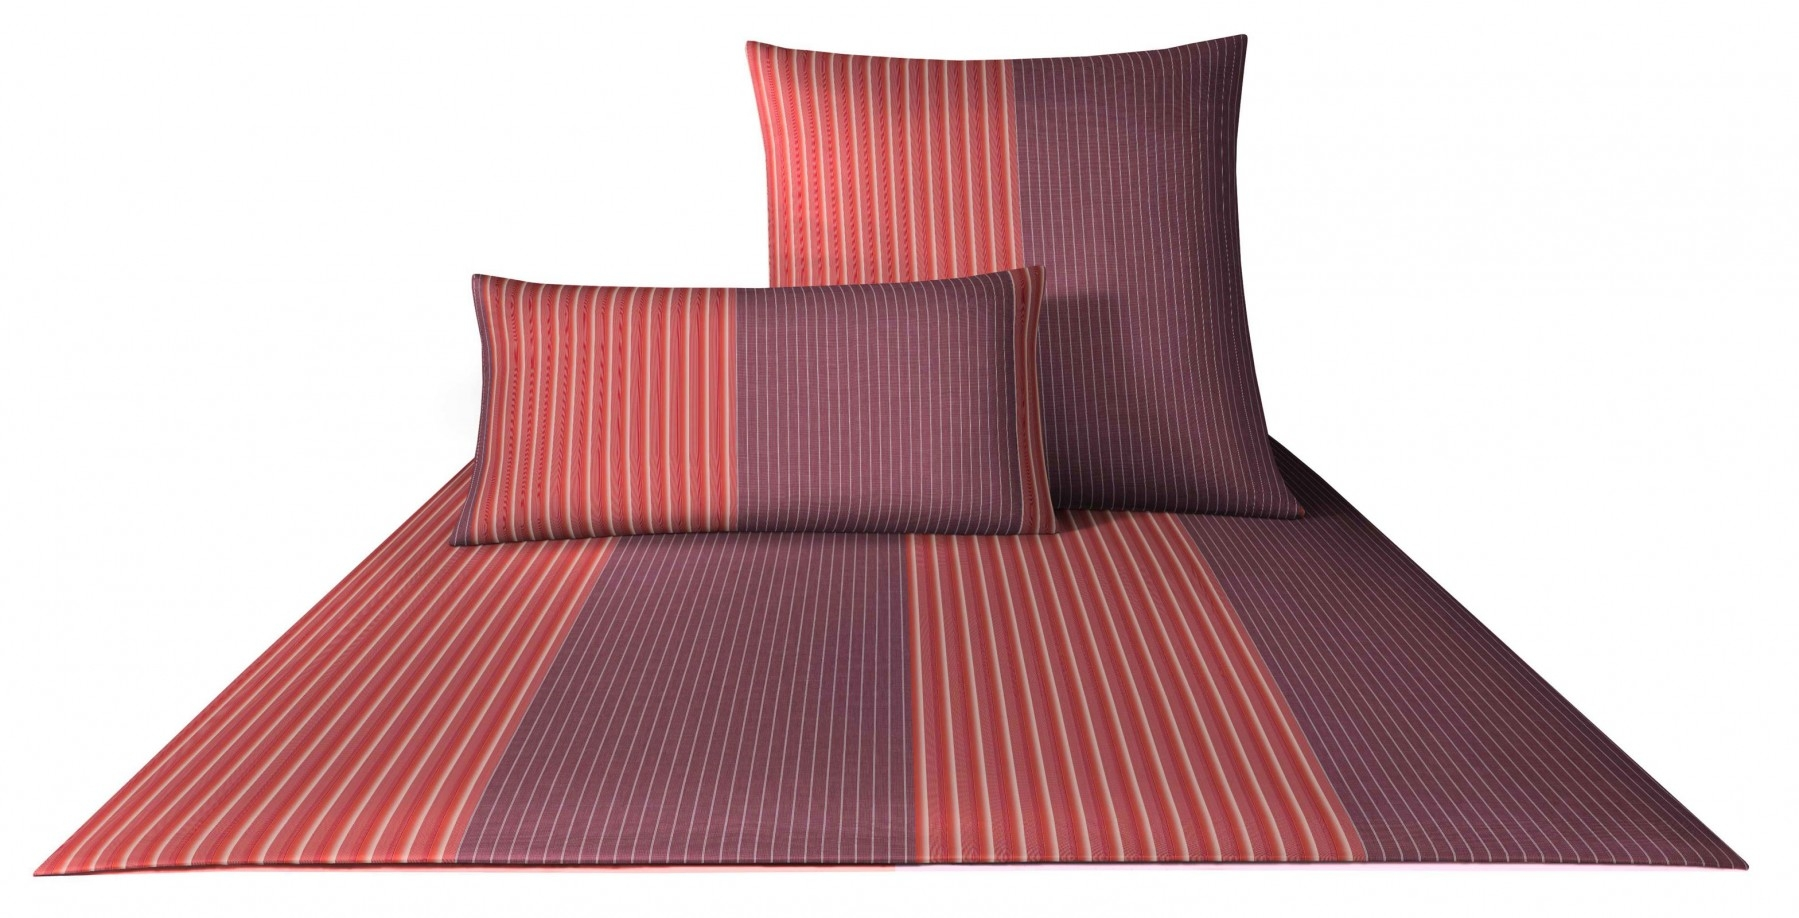 Bettwäsche - 4tlg. Joop Mako Satin Bettwäsche Double Stripes 155x220 4054 1  - Onlineshop PremiumShop321